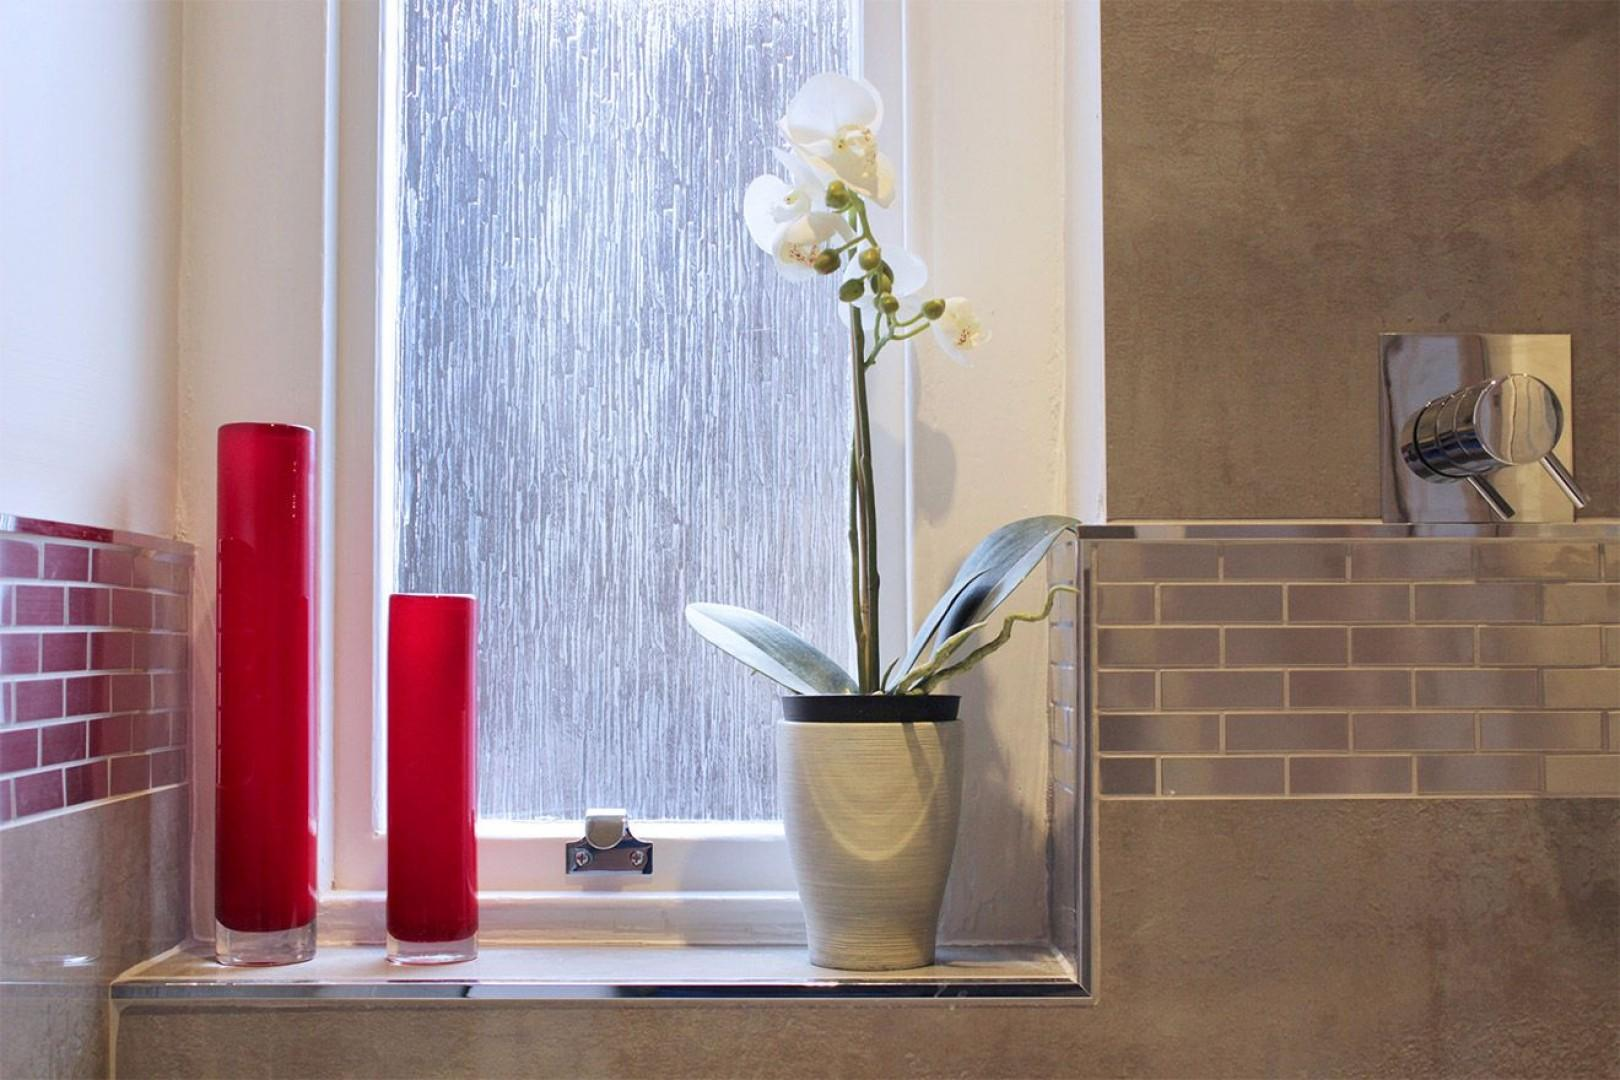 Window and decorative touches in the bathroom